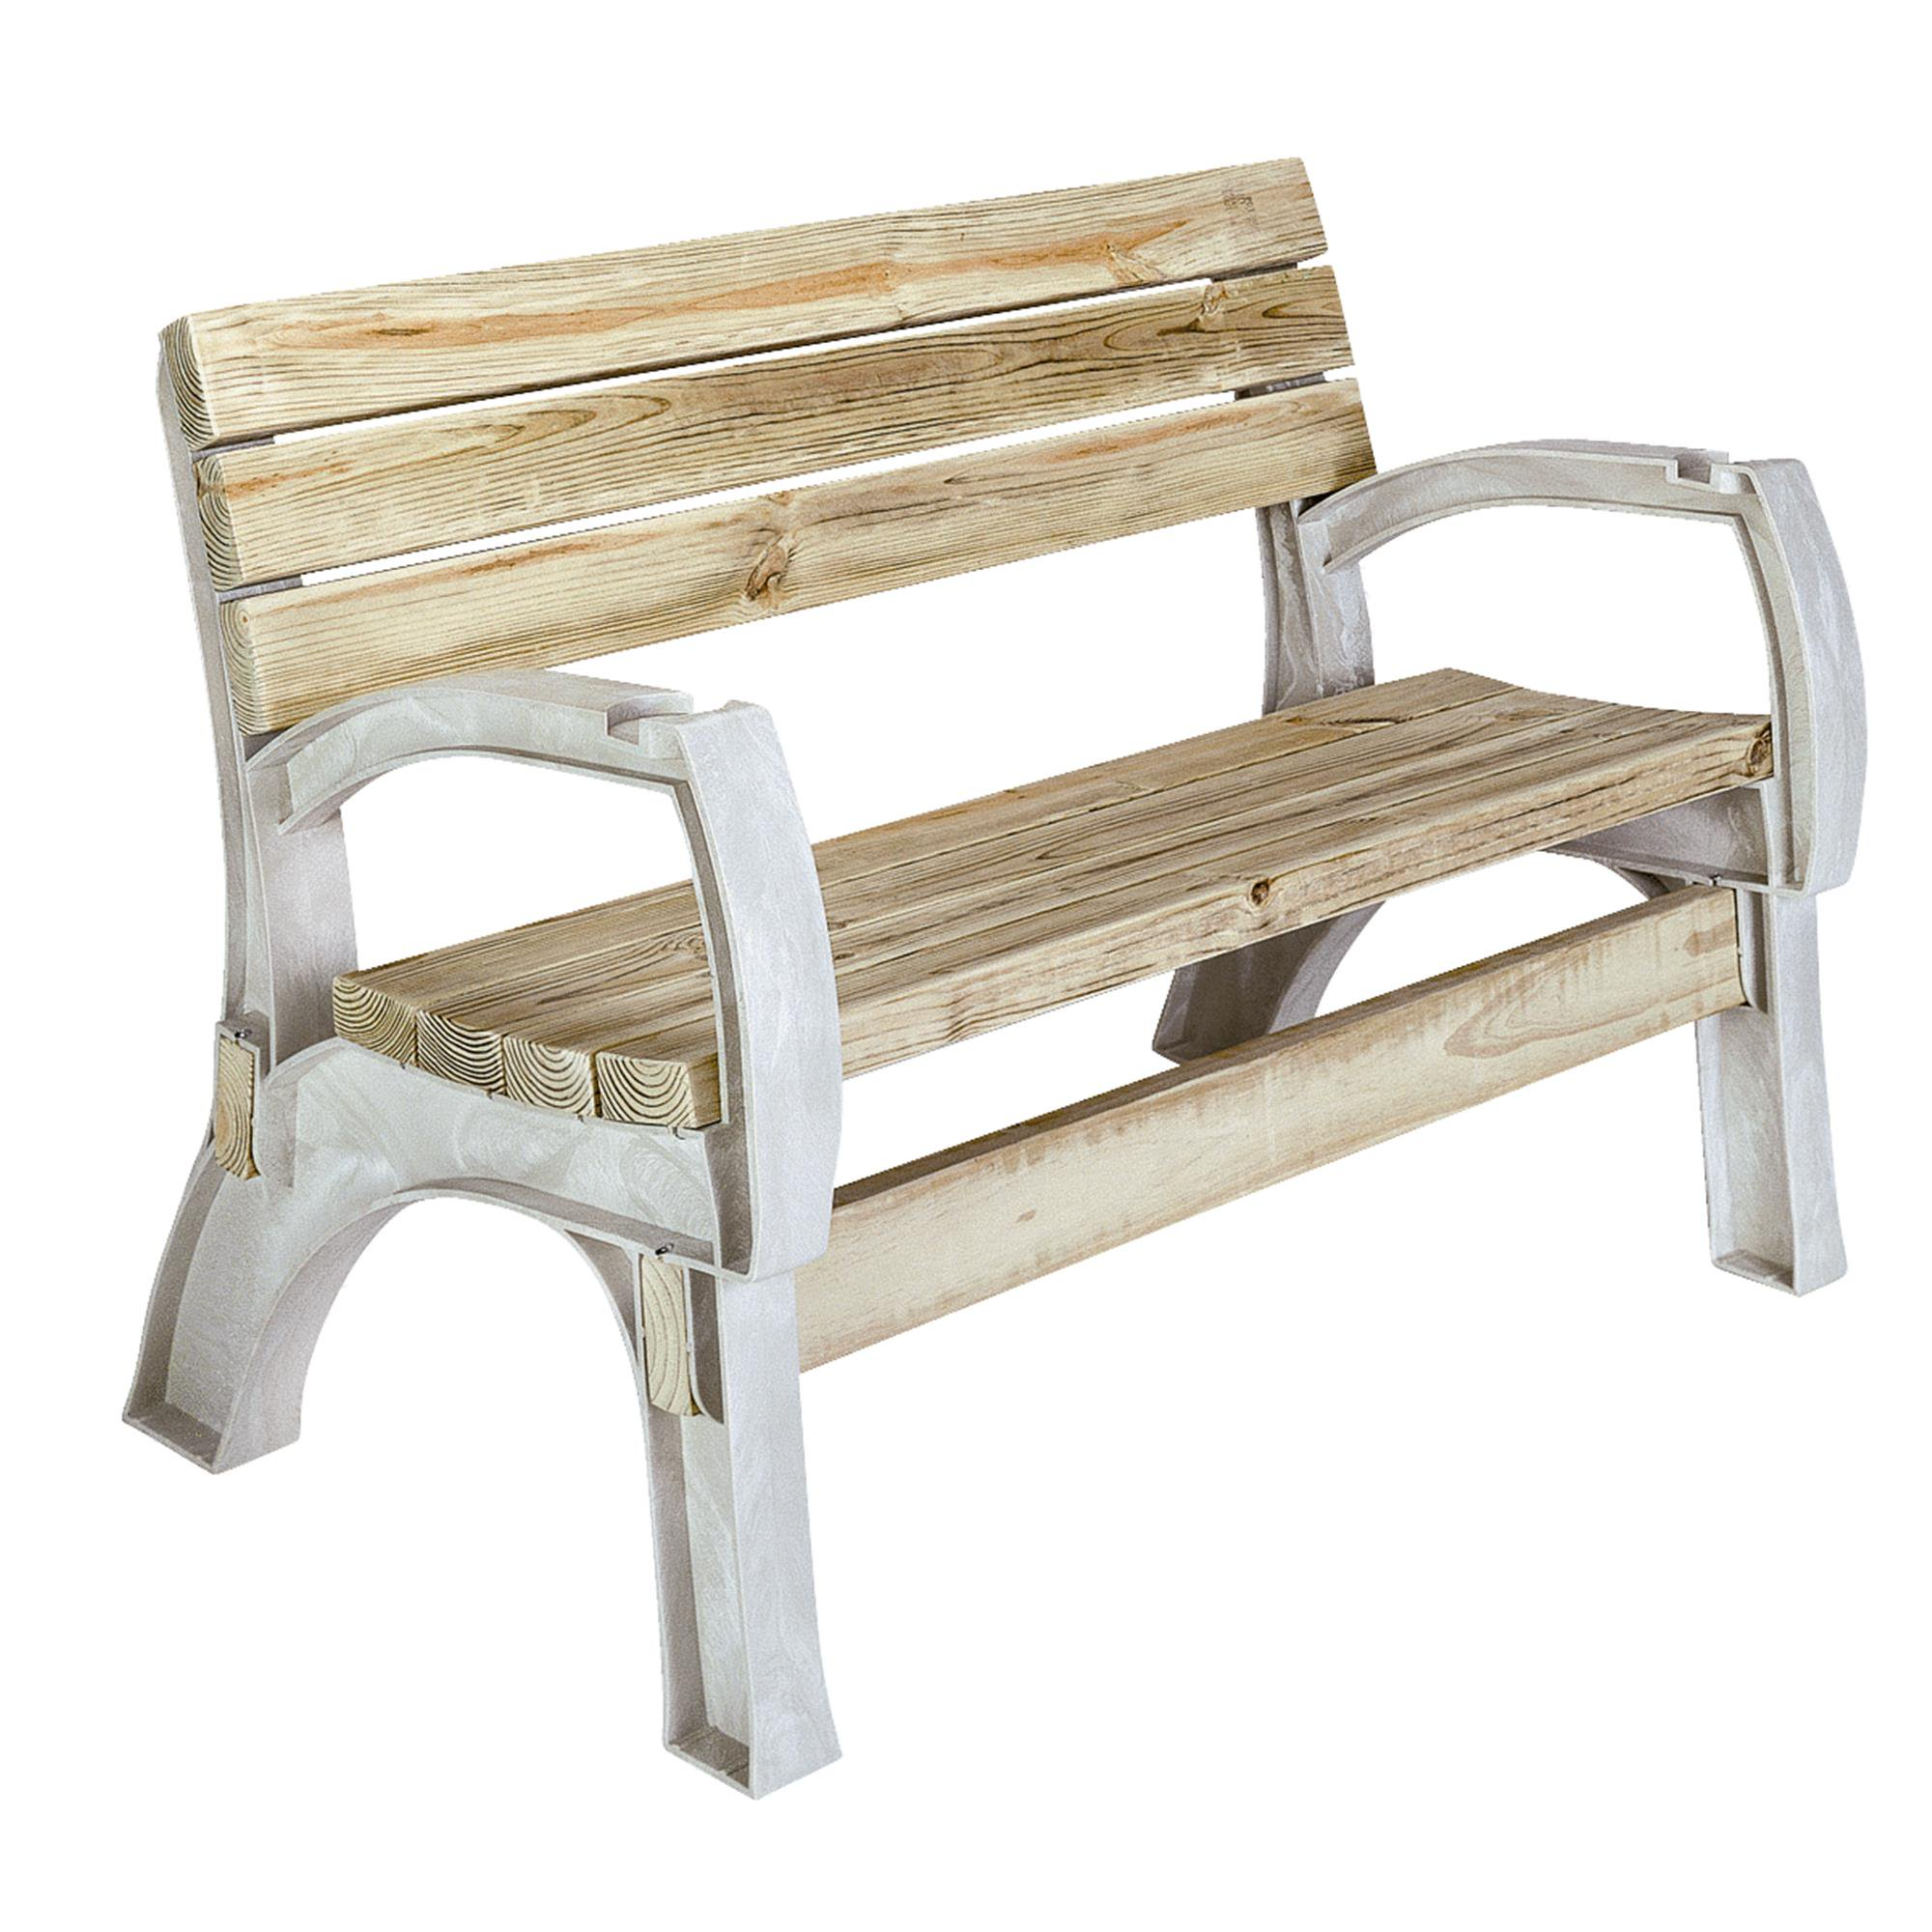 Hopkins F3 Brands 90134 Any Size Chair Bench Kit by Outdoor Benches